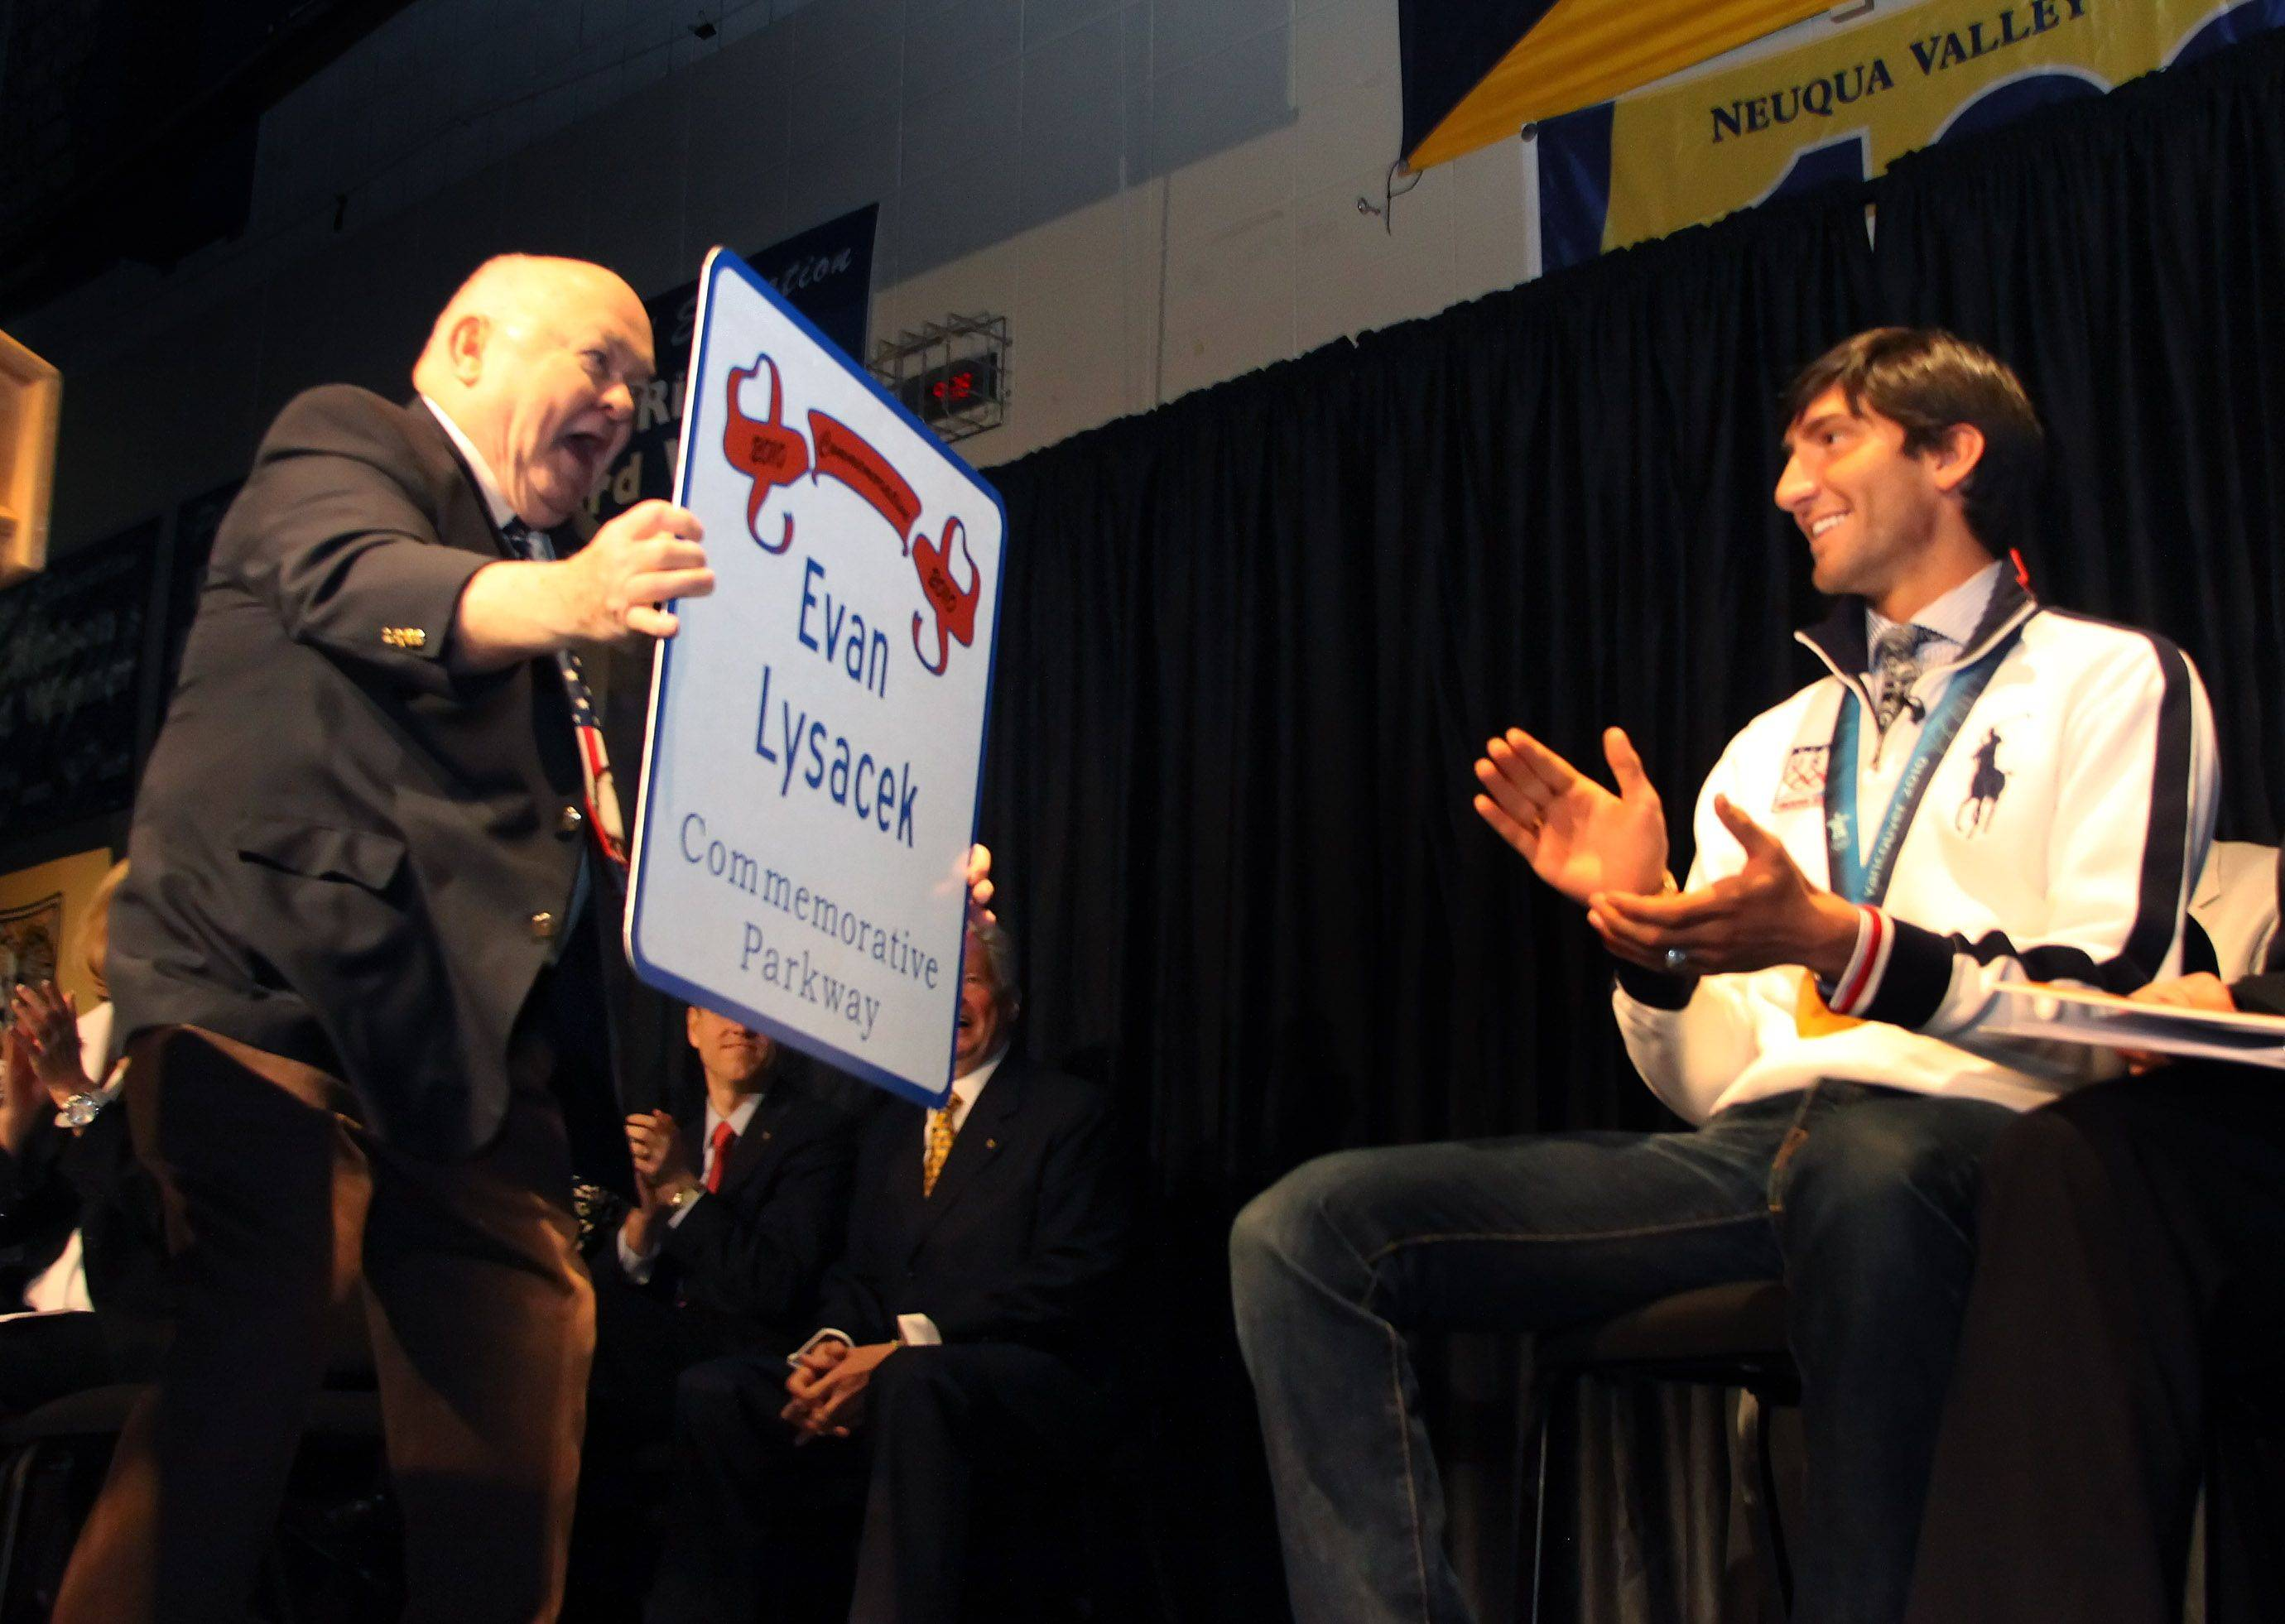 Mayor George Pradel shows Evan Lysacek a sign that will be up at the school as Lysacek returns to Neuqua Valley High School as part of Evan Lysacek Day in Naperville on Friday.